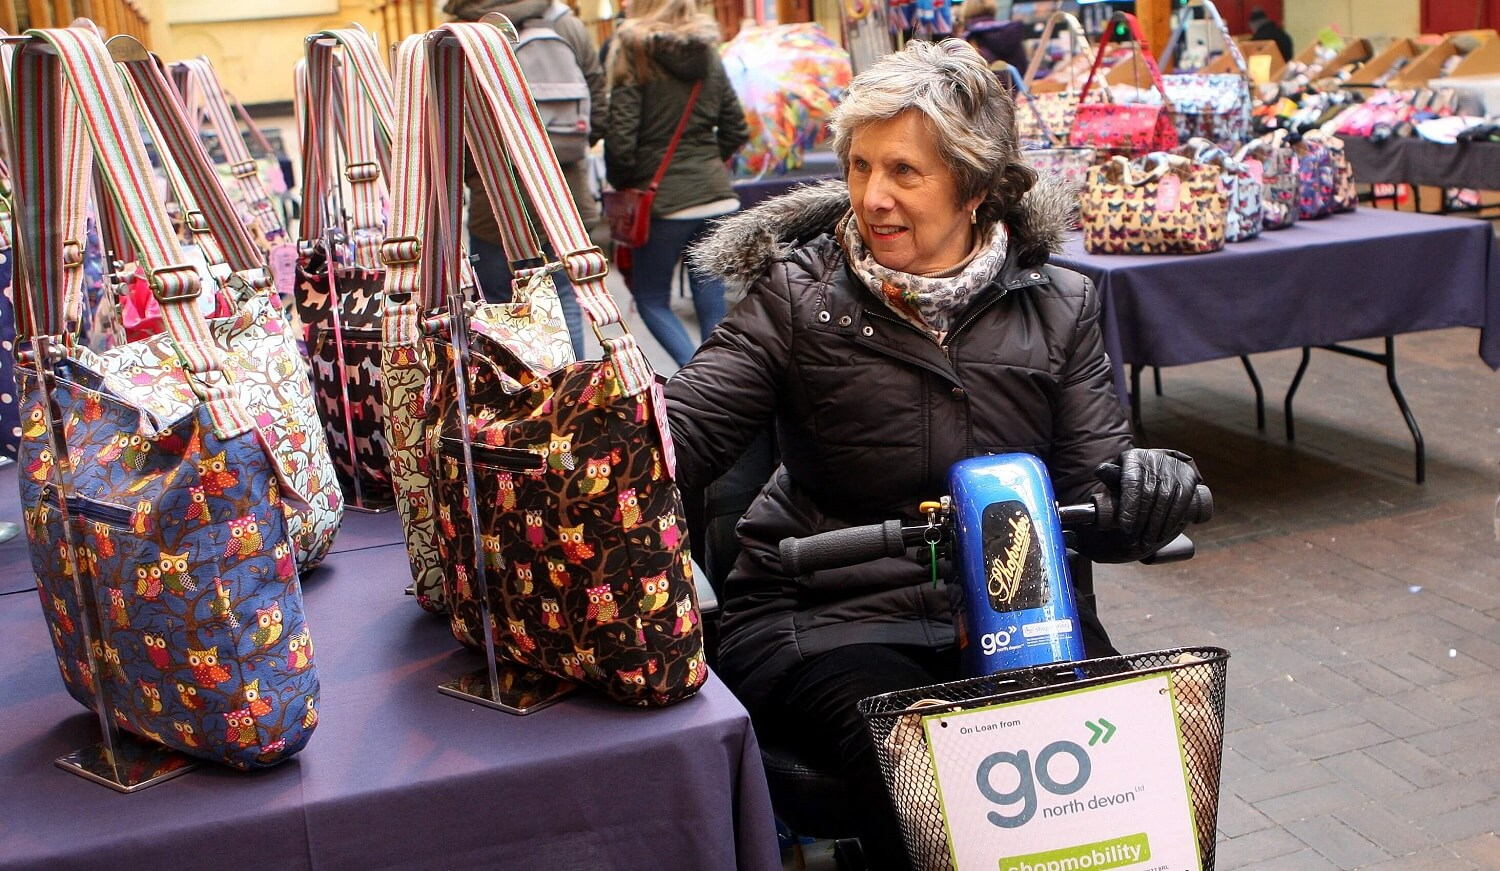 An elderly lady browsing handbags in a market on a Go North Devon shopmobility scooter.